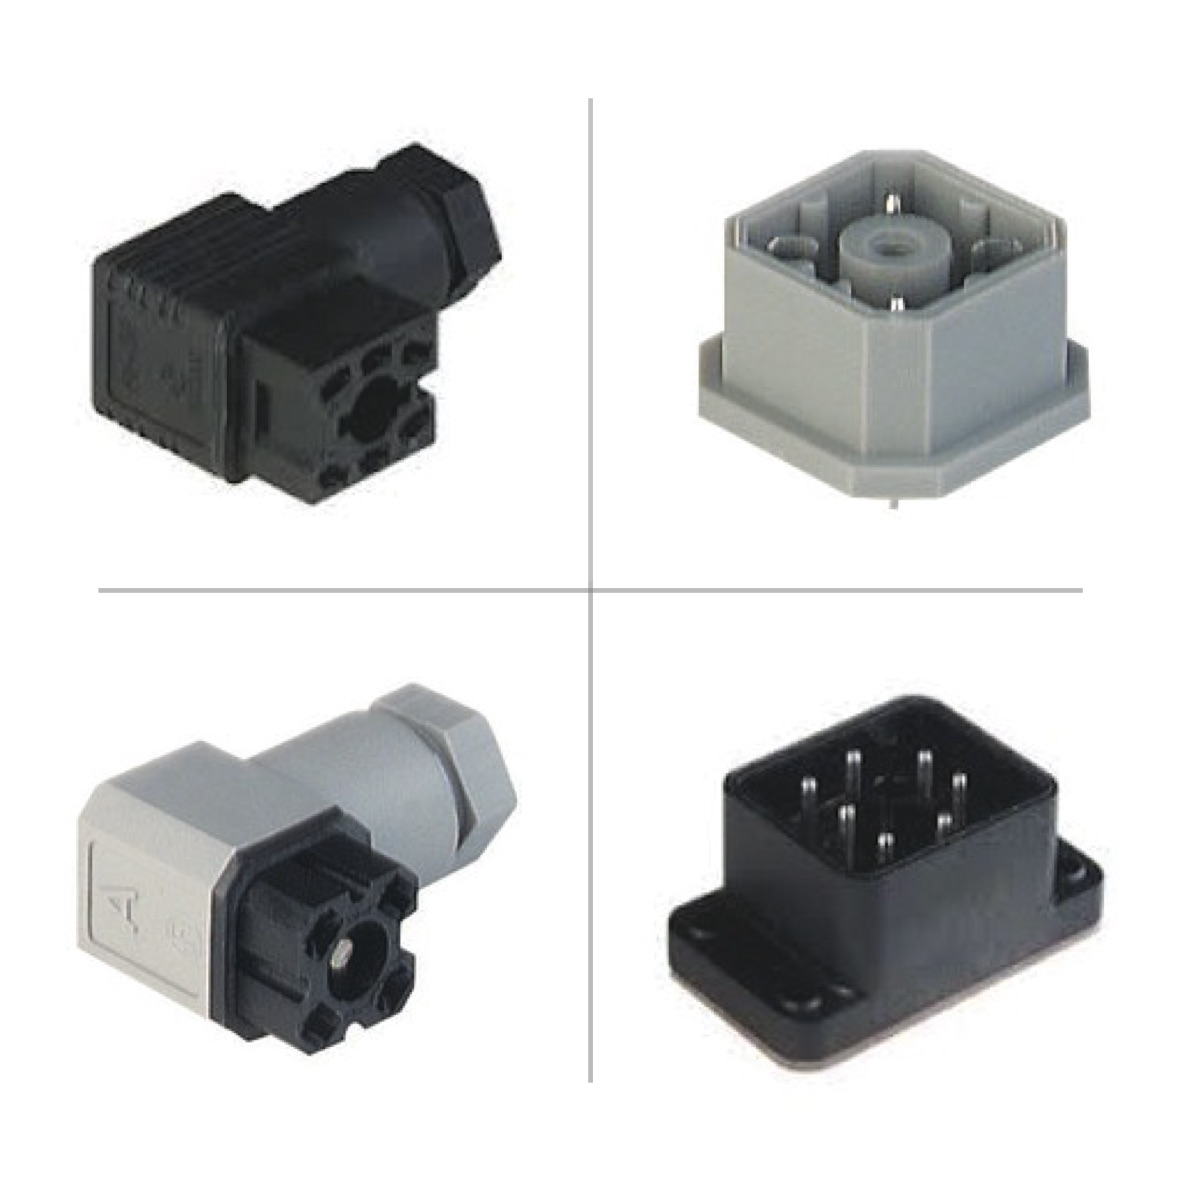 Hirschmann G Series Connectors